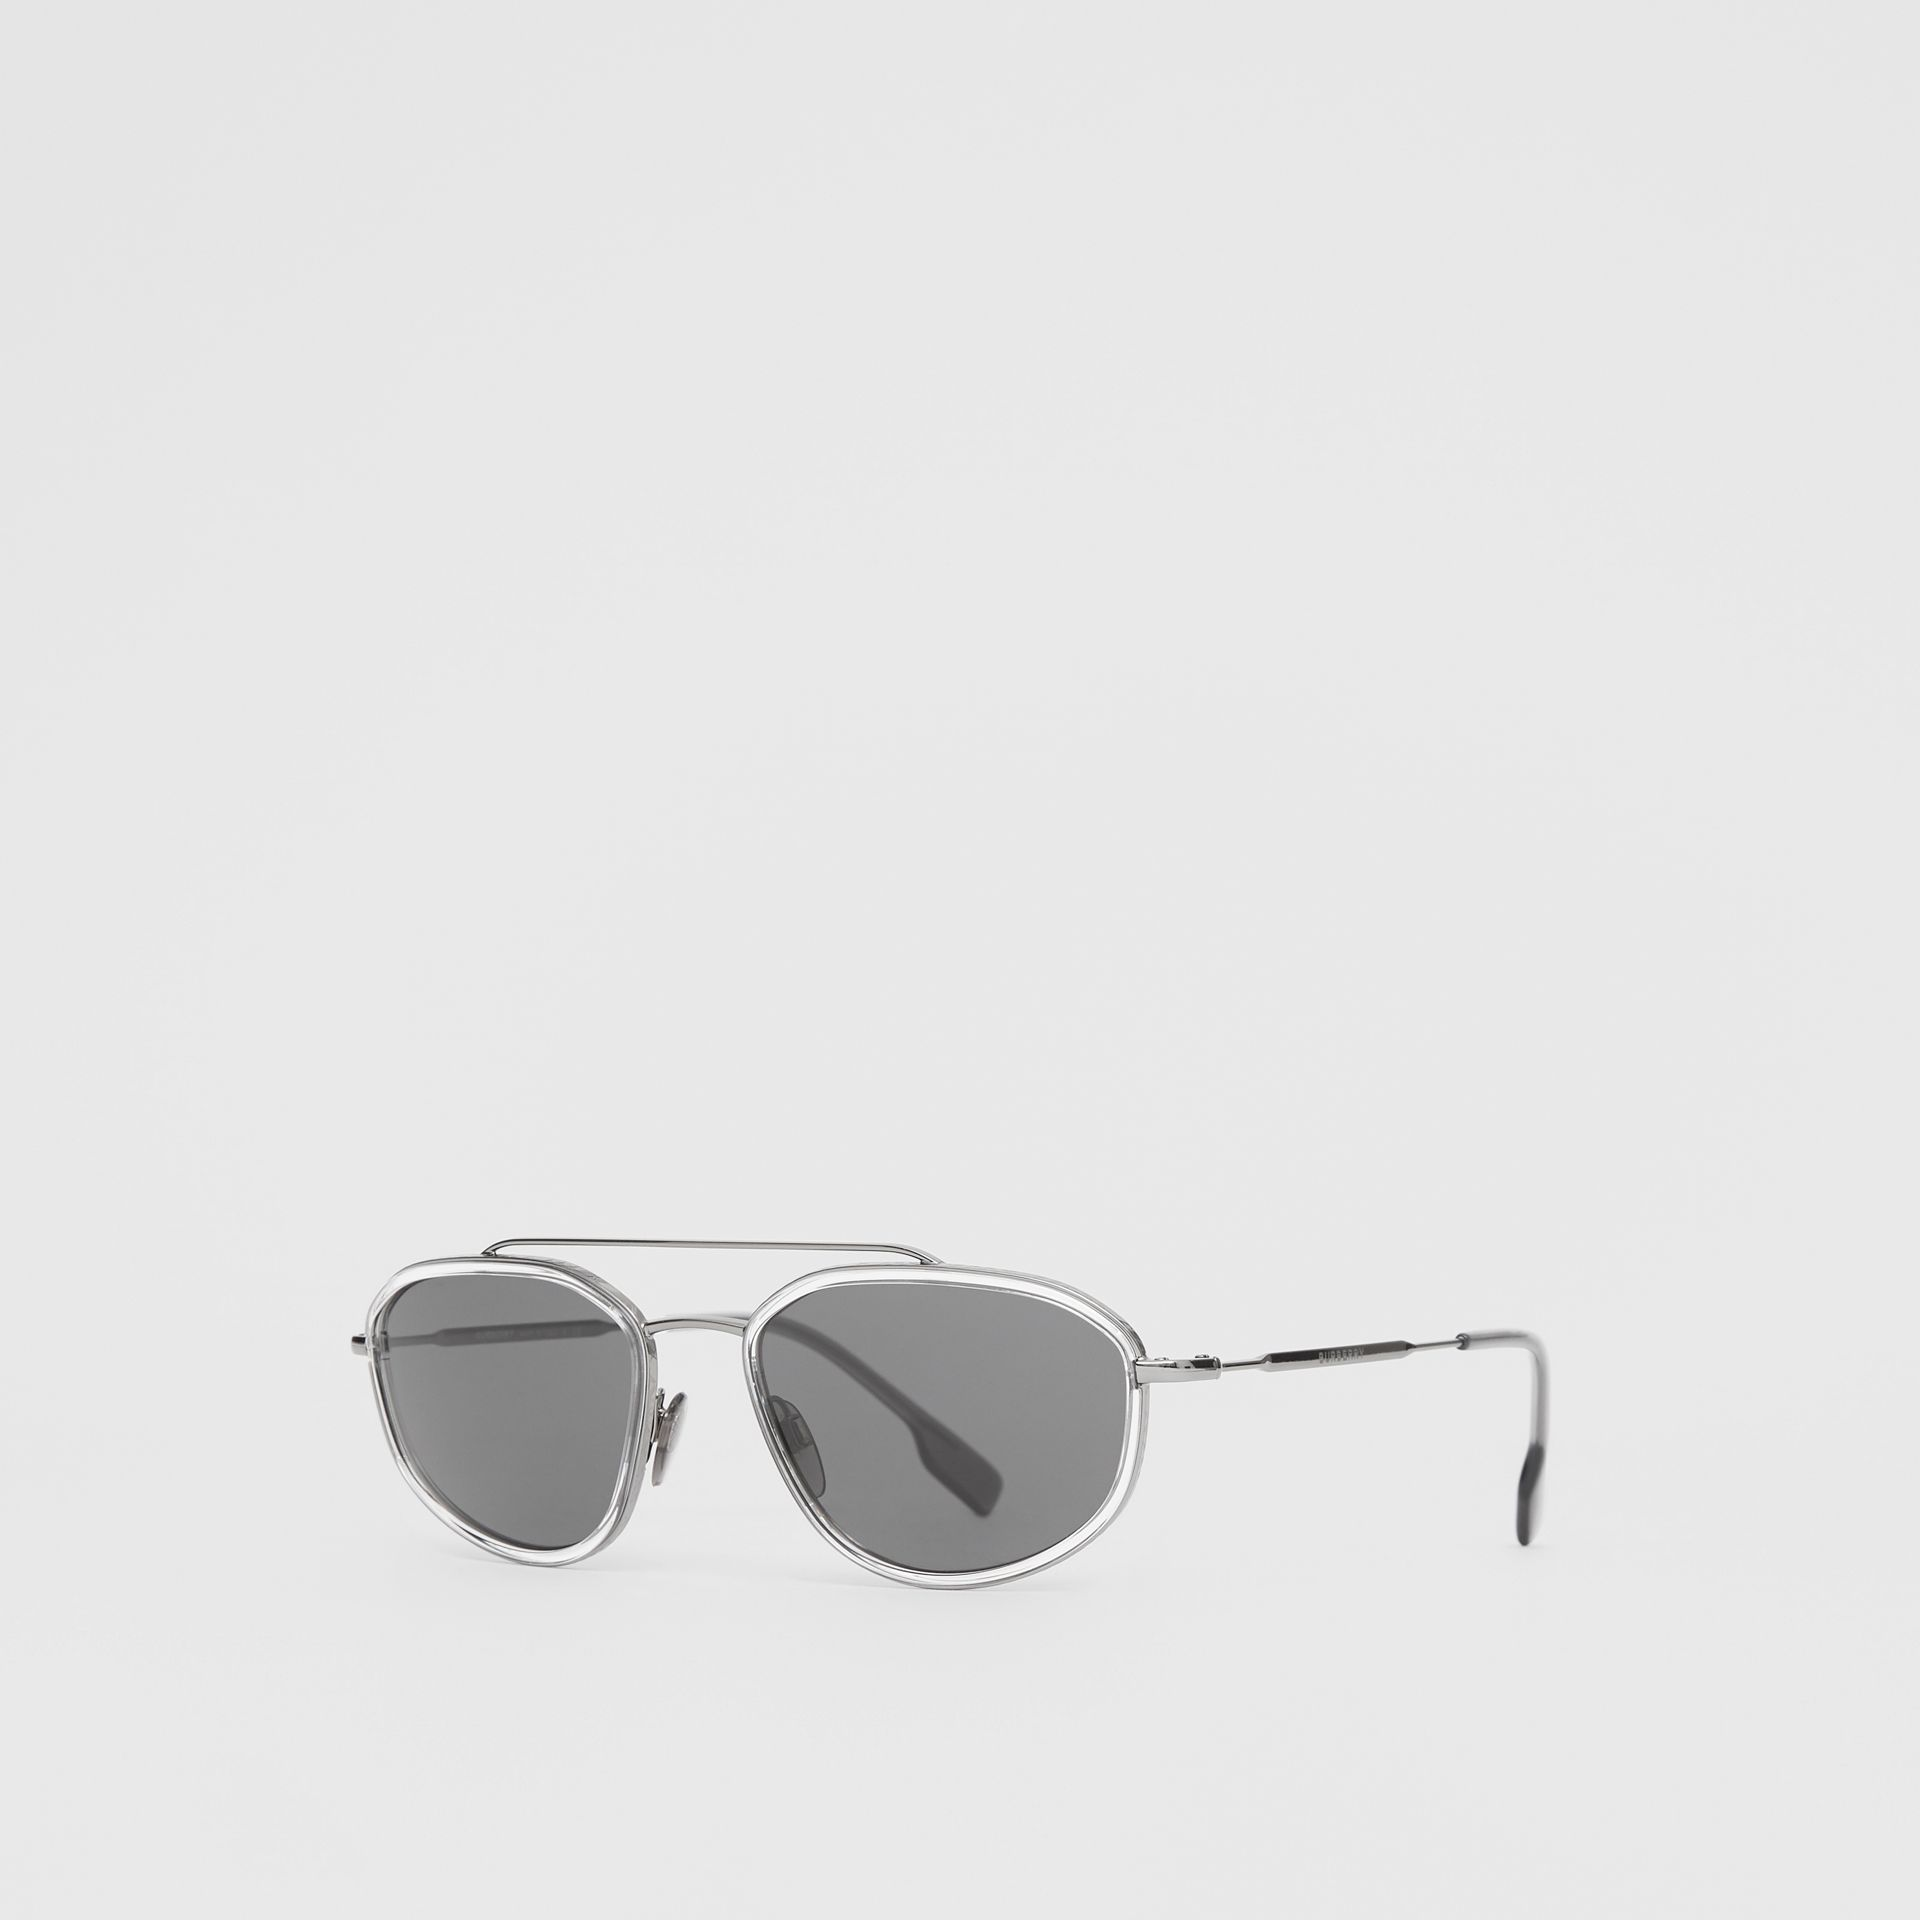 Geometric Navigator Sunglasses in Gunmetal Grey - Men | Burberry United Kingdom - gallery image 5